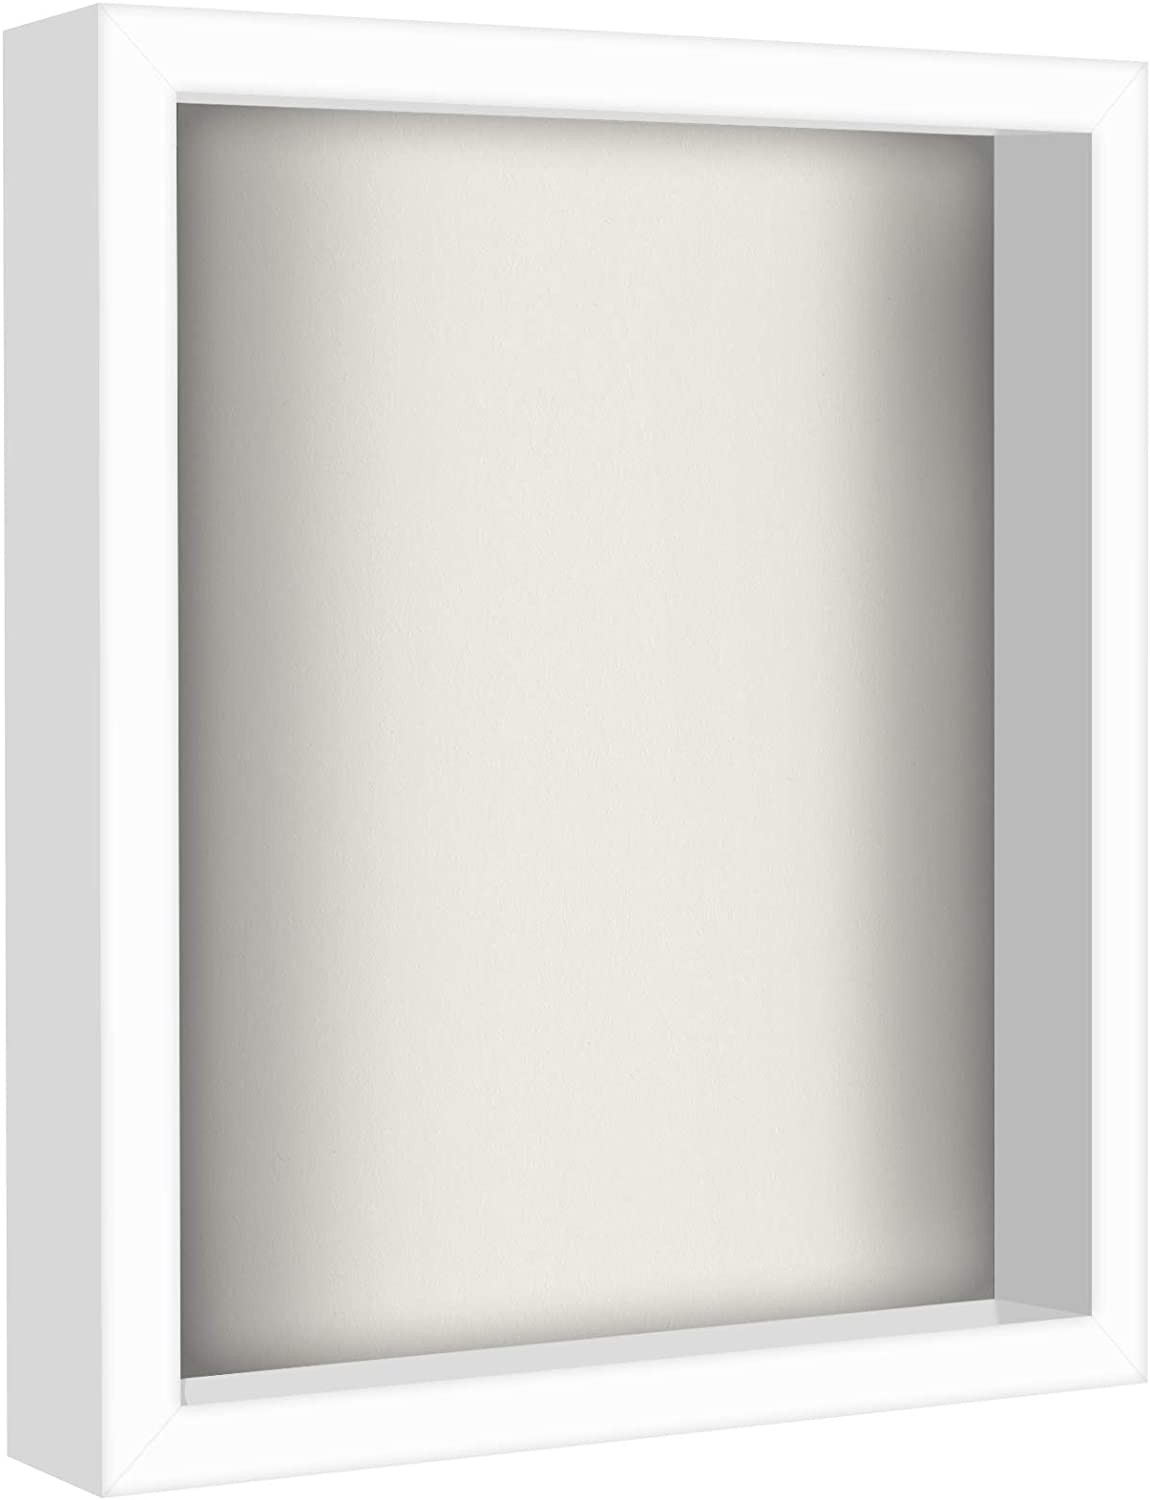 Americanflat 11x14 Shadow Box Frame in White with Soft Linen Back - Composite Wood with Shatter Resistant Glass for Wall and Tabletop